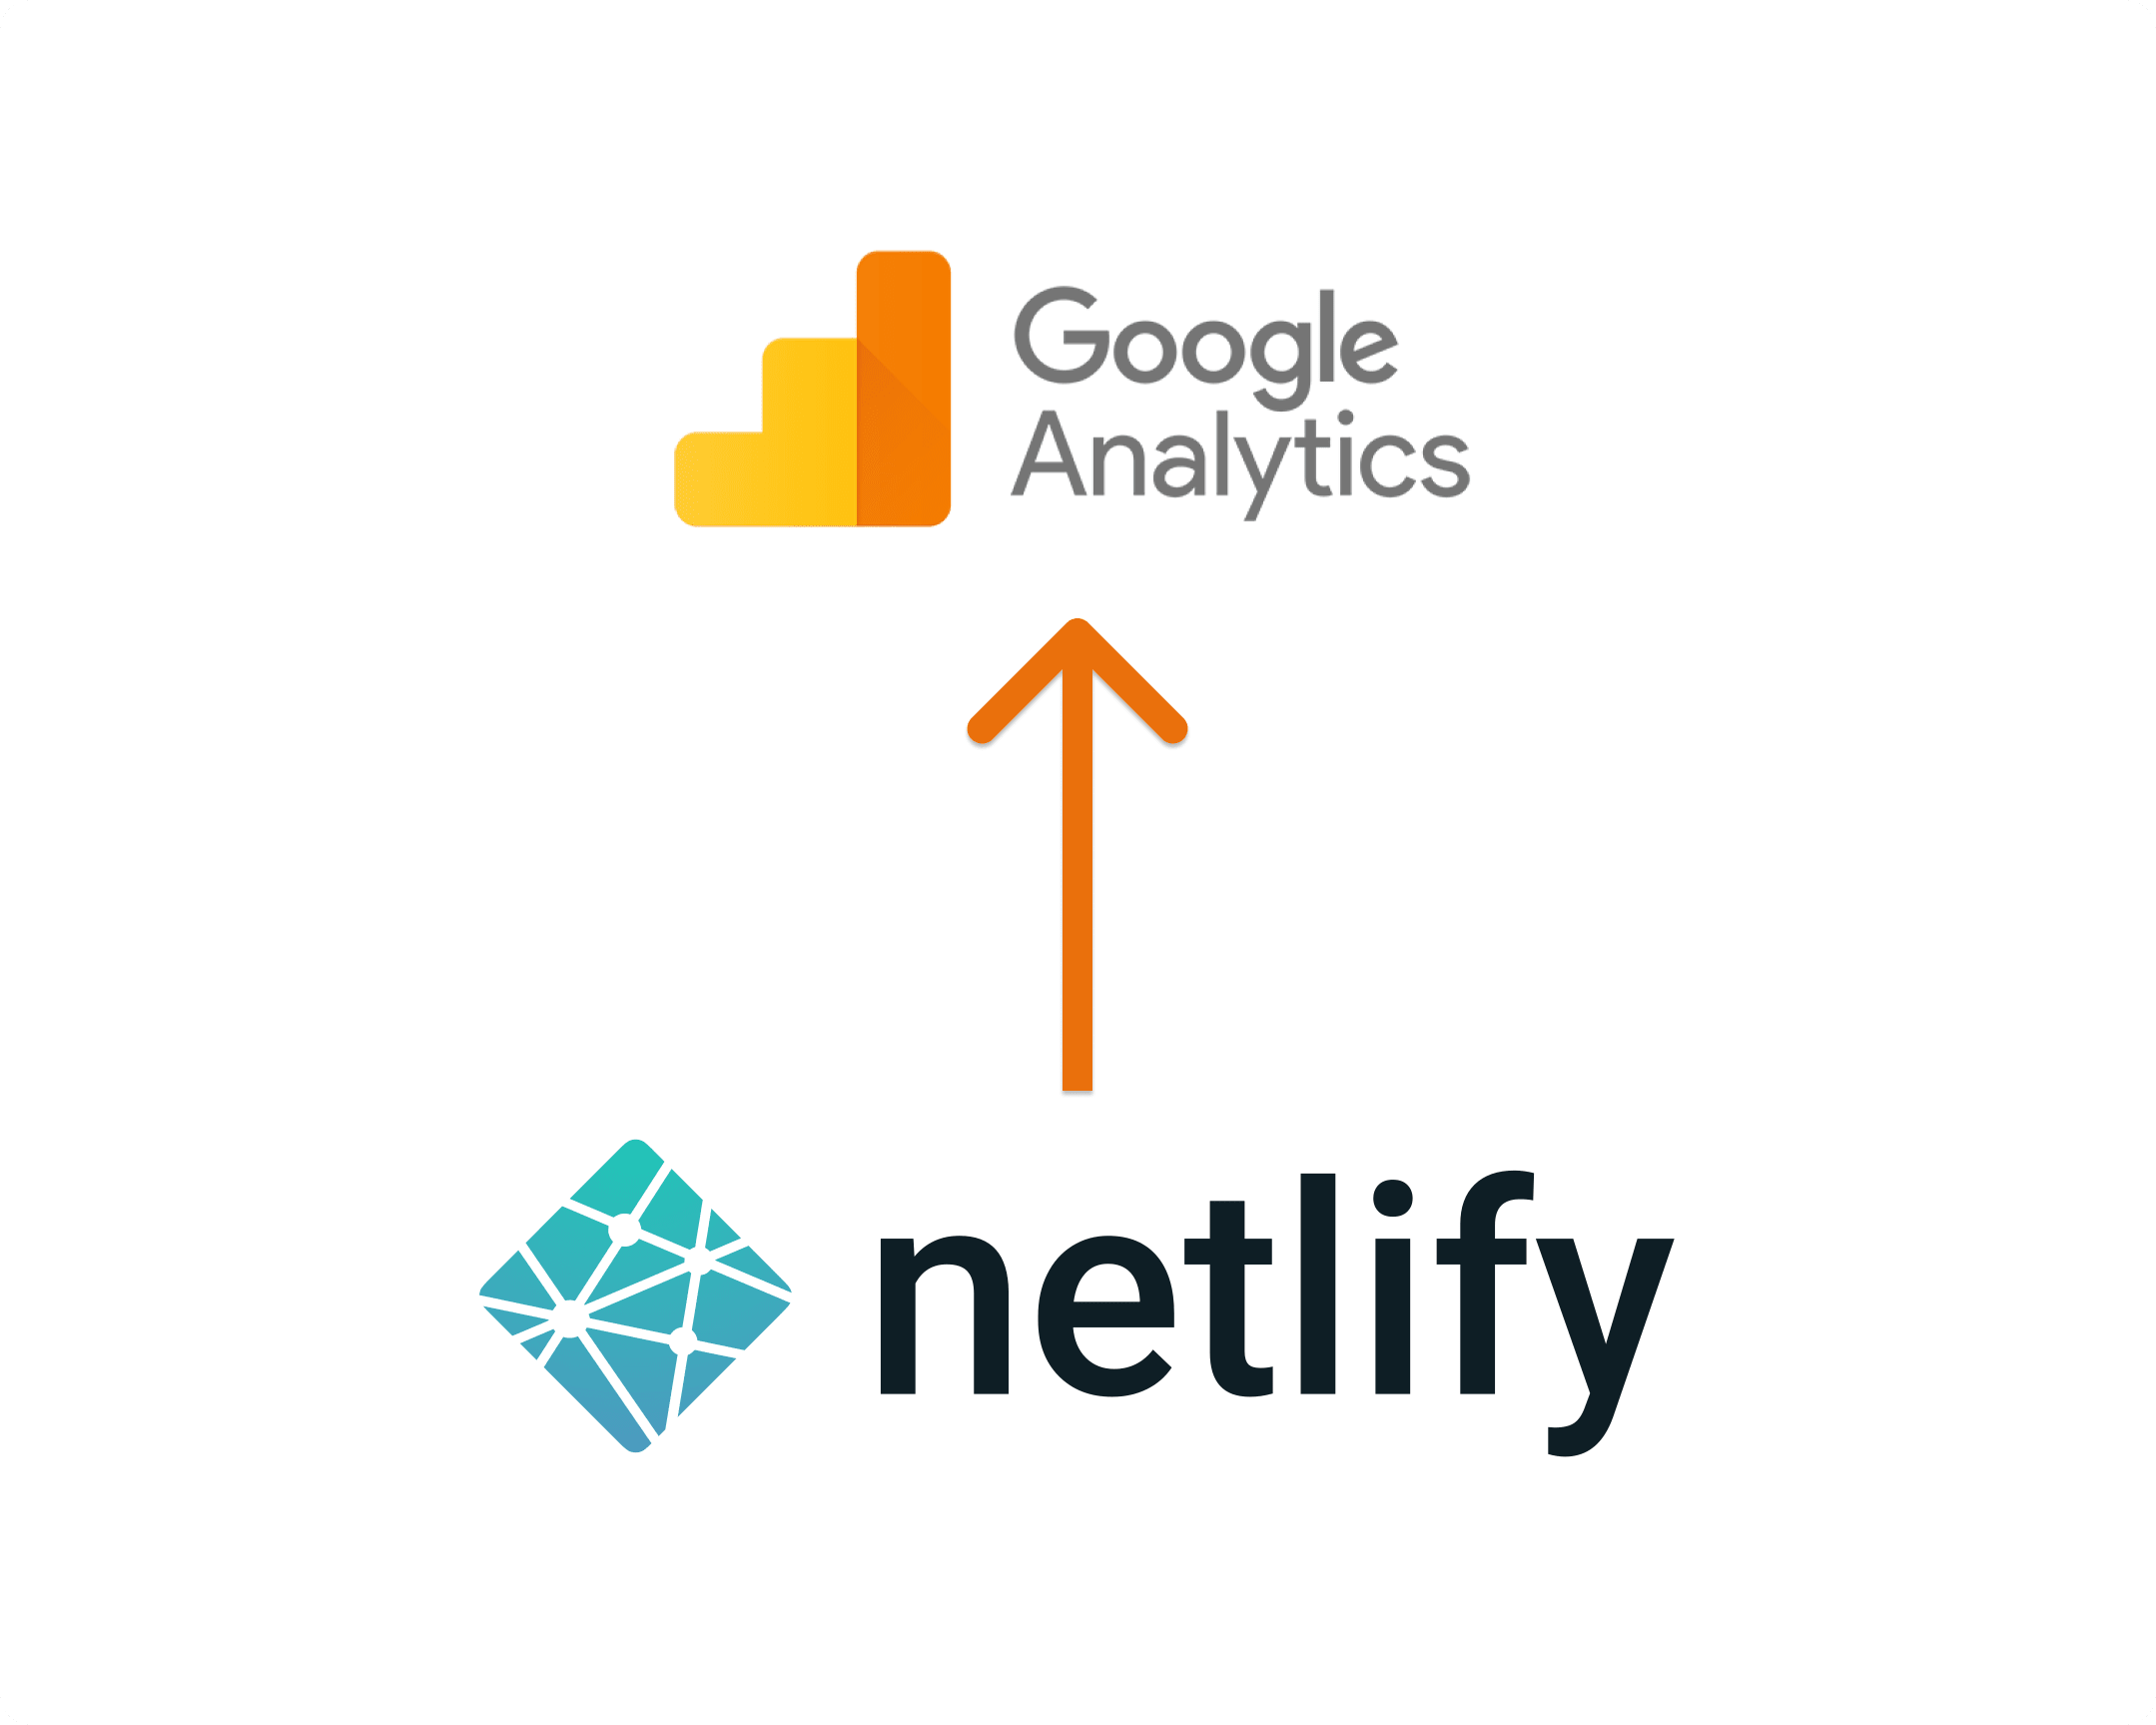 Get page views from Google Analytics using a Netlify Serverless function